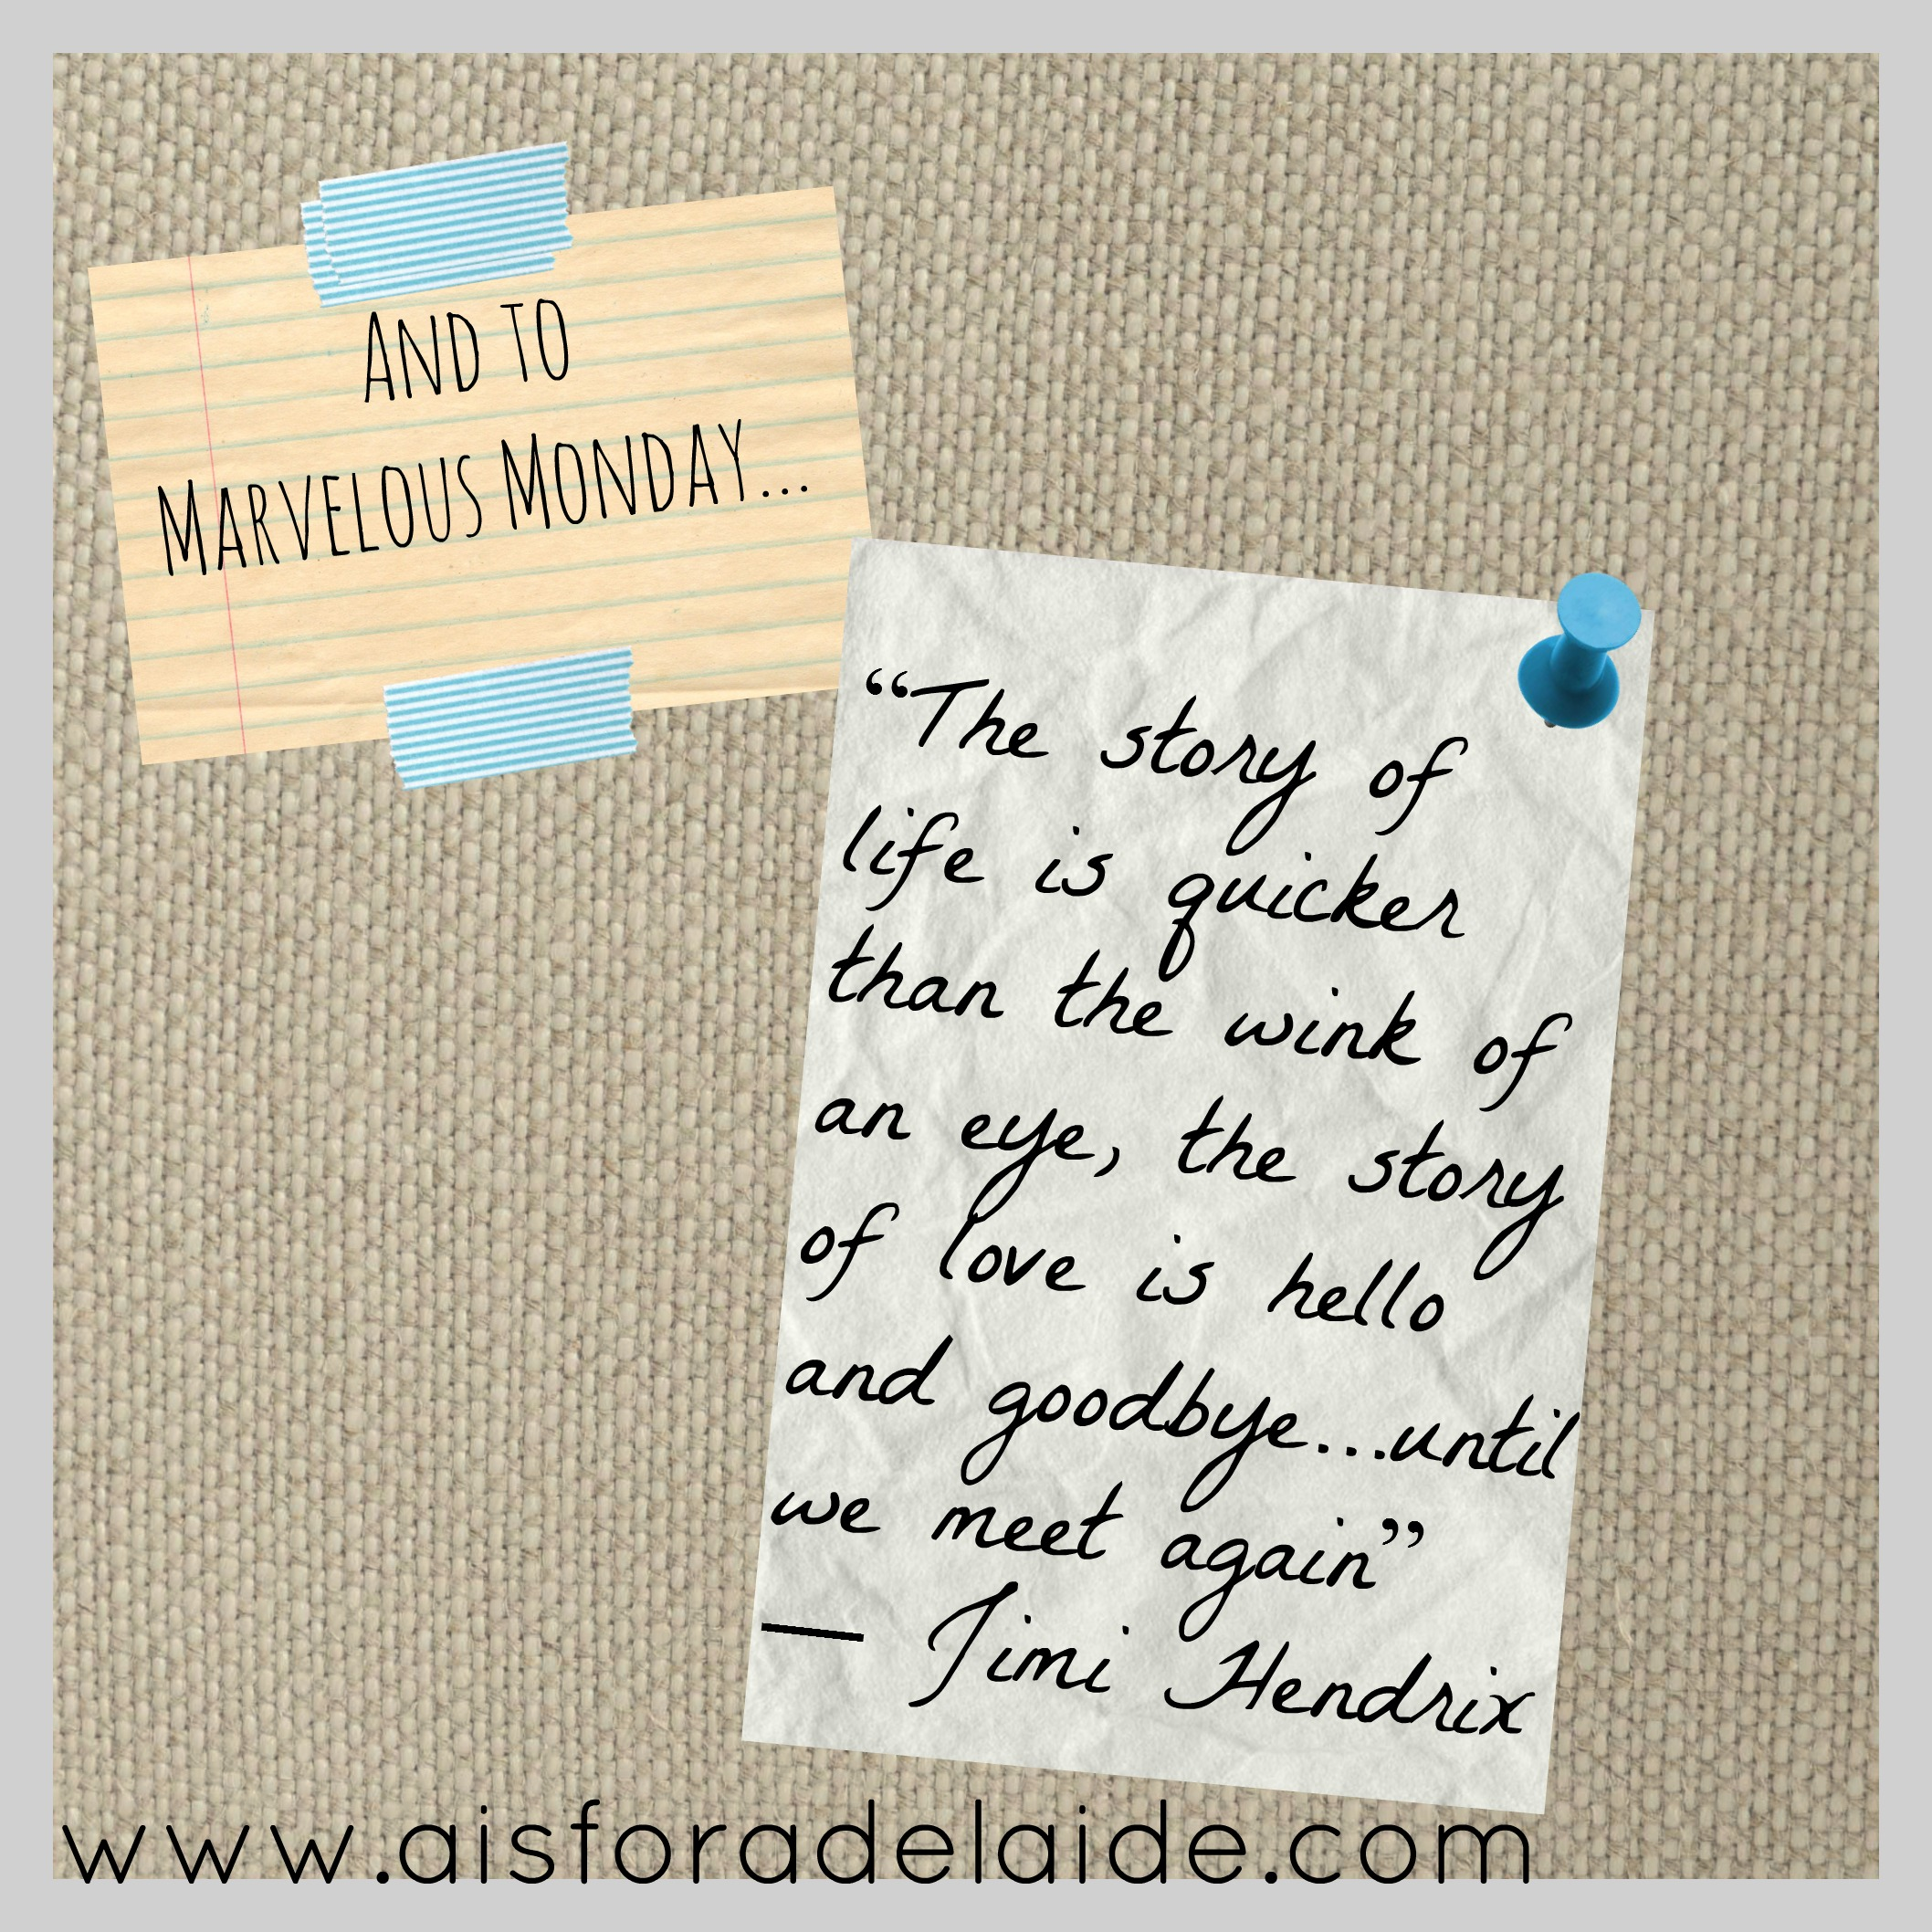 The last Marvelous Monday post for a while... but never fear! More content coming to YOU! #aisforadelaide